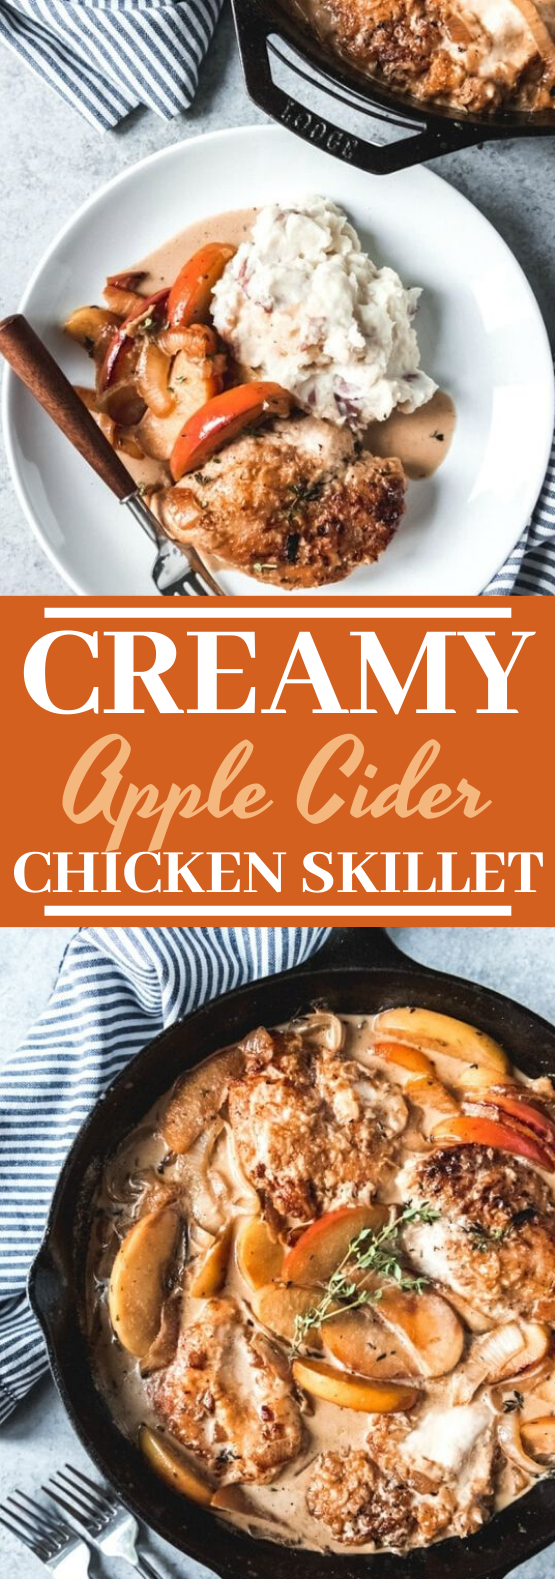 Creamy Apple Cider Chicken Skillet #dinner #chicken #fall #recipes #easy